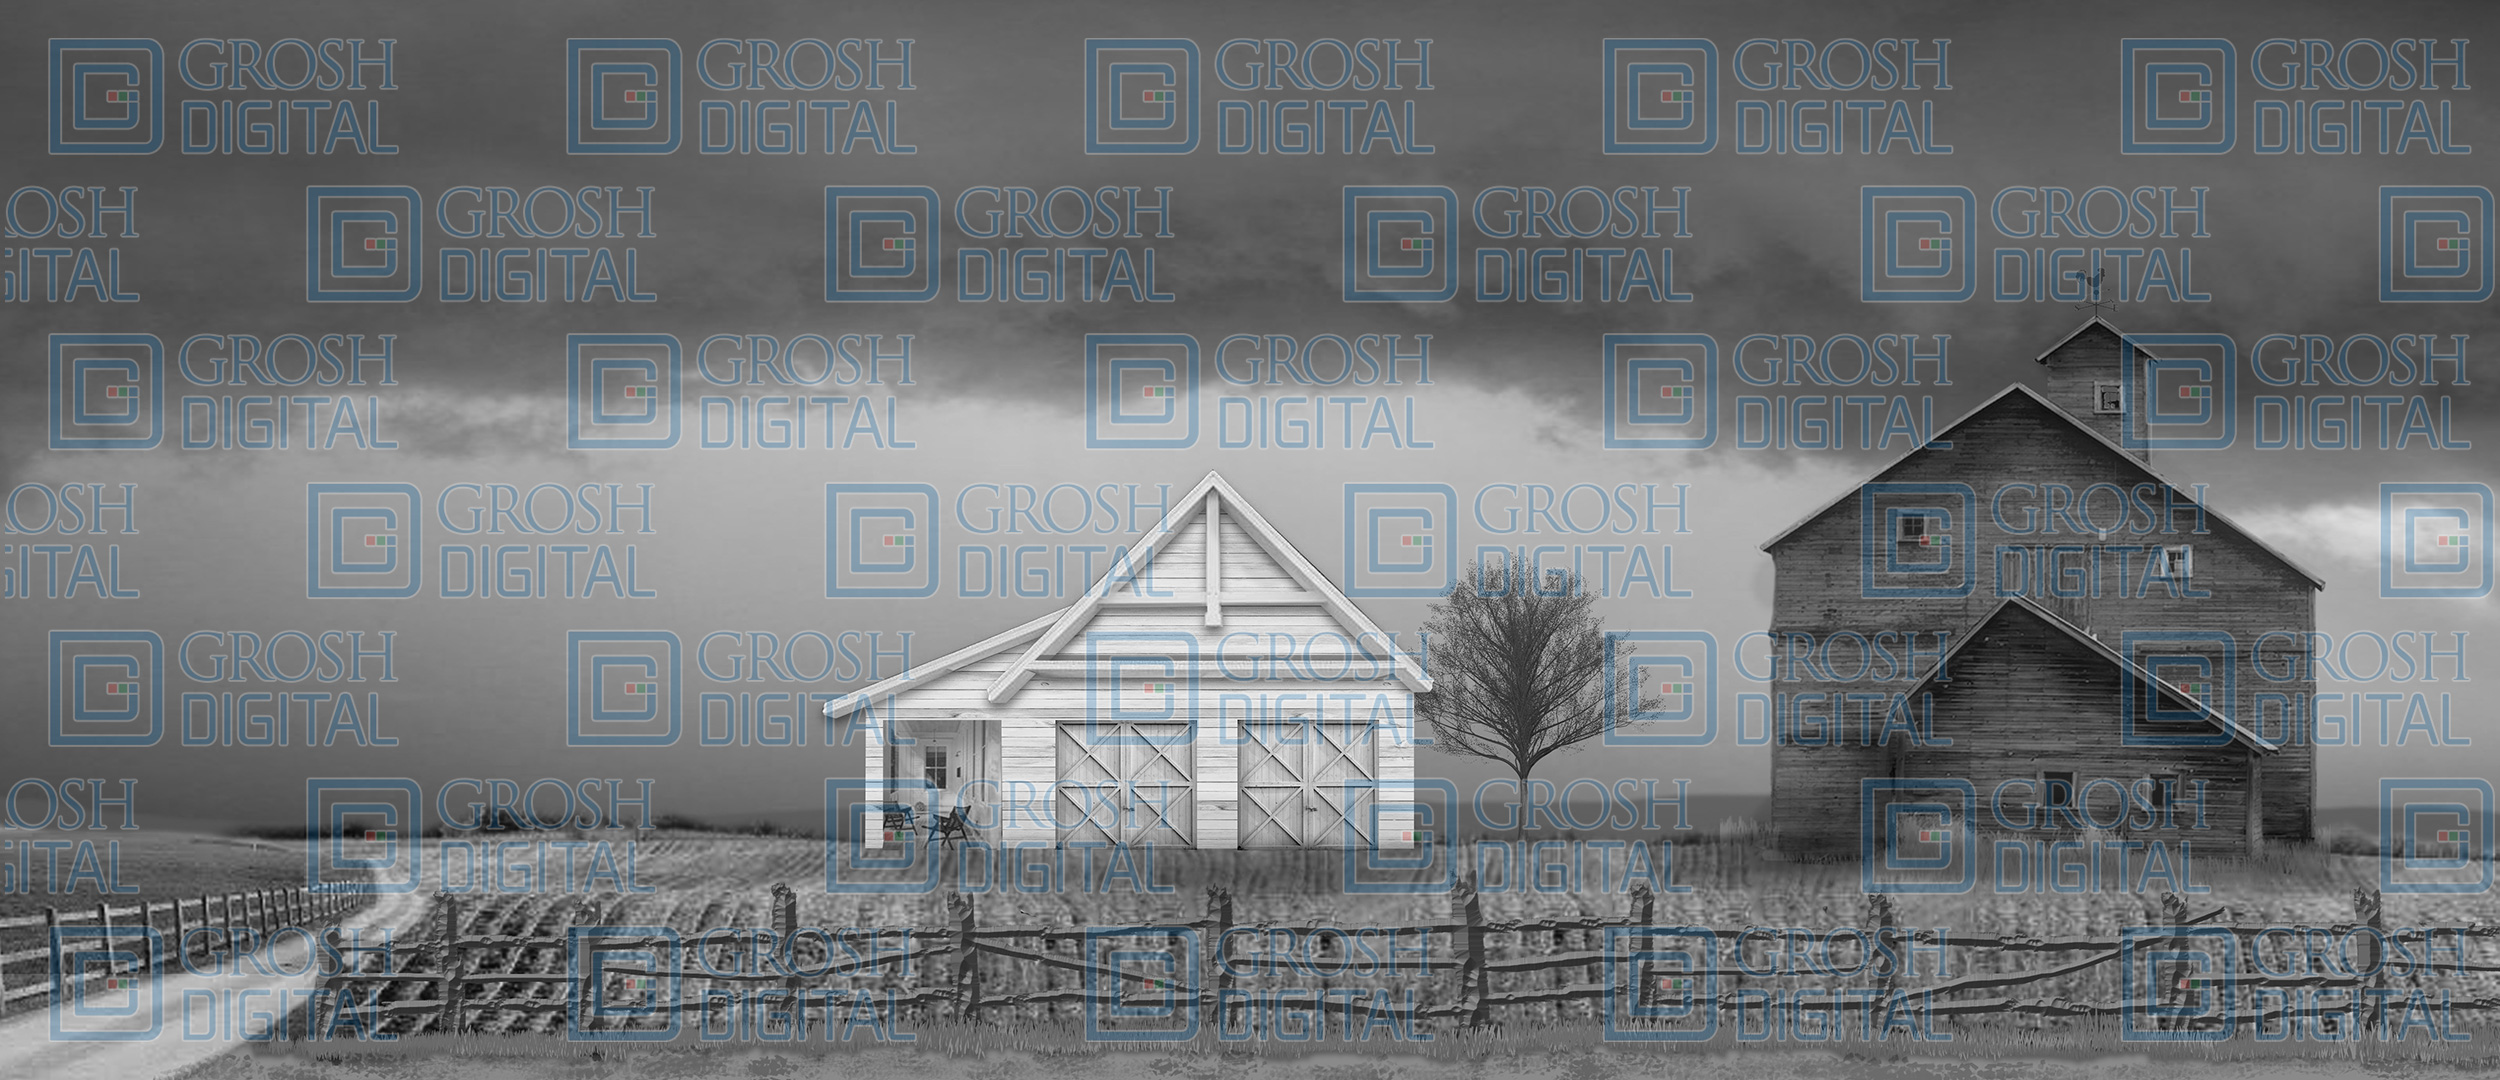 Black and White Kansas Farm Projected Backdrop for Landscapes, Wizard of Oz